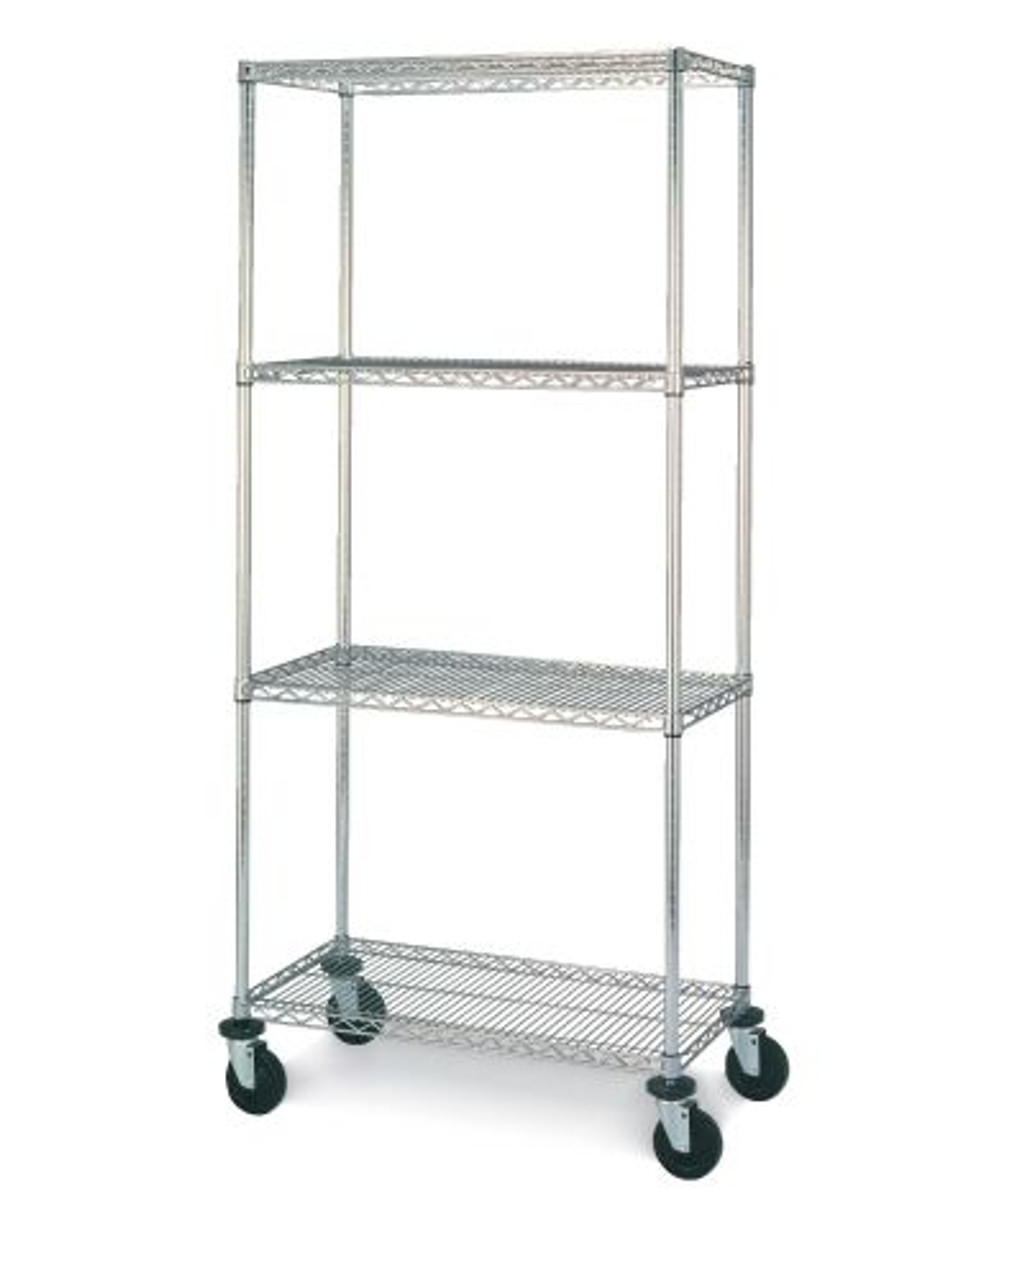 "Olympic 18"" Deep 4 Shelf Mobile Carts - Chrome - 18"" x 60"" x 68"" MJ1860-63UC"